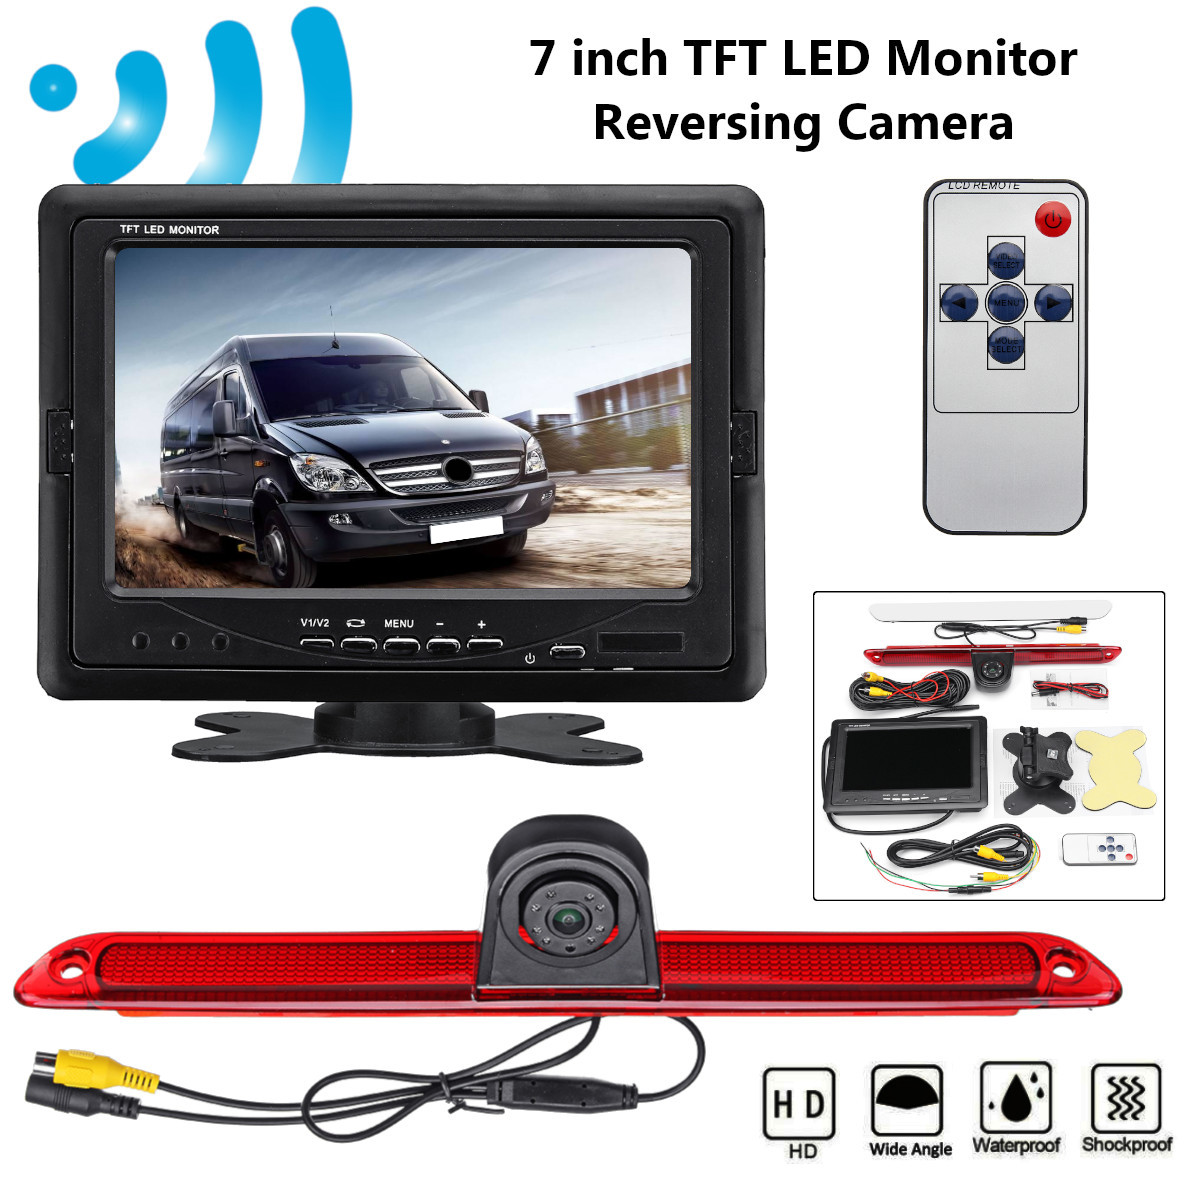 7inch TFT LED Monitor Reversing Backup Rear View Camera Parking For Mercedes-Benz for Dodge Sprinter for VW Crafter 2006-2015